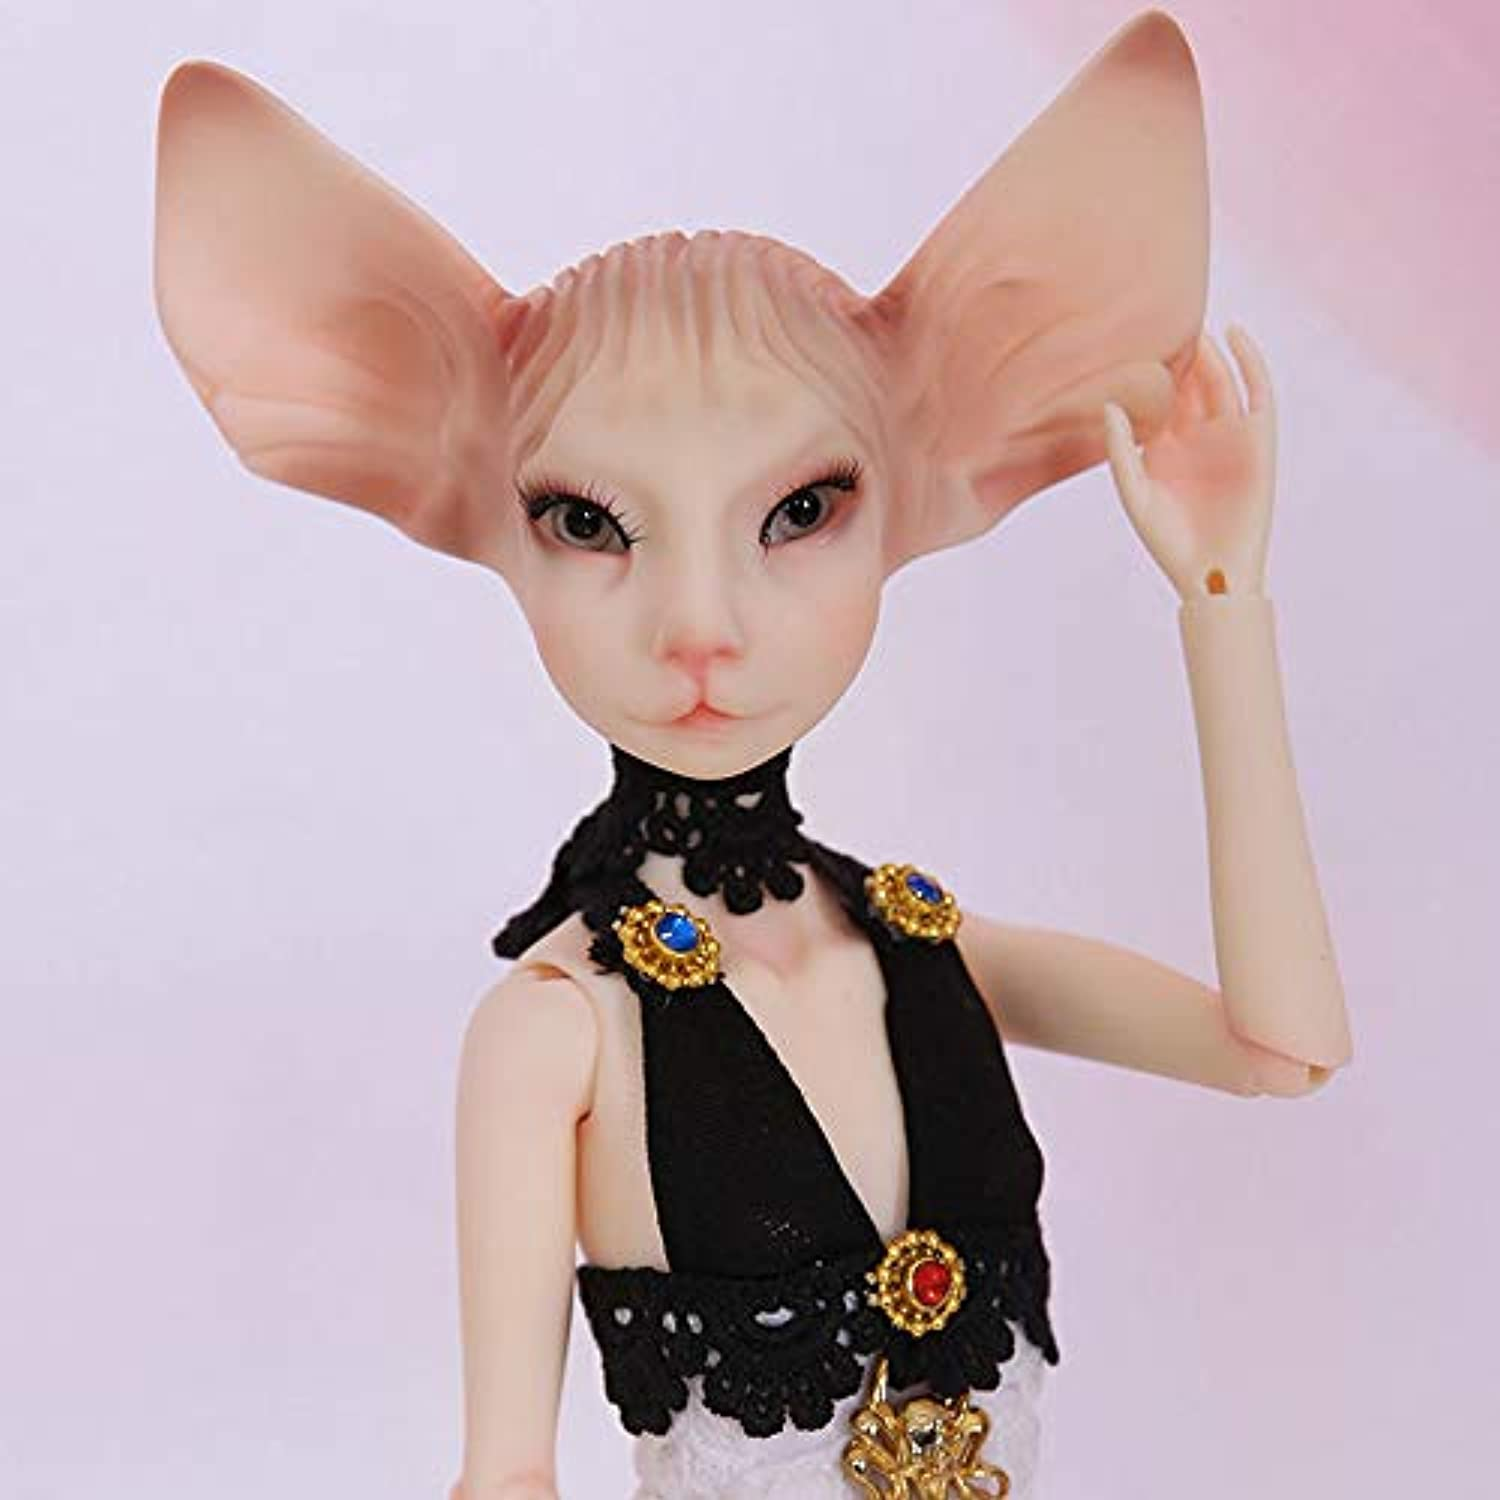 ZMH 14 Inch 1 4 BJD SD Doll Toys 36cm 19-Jointed Body Cosplay Fashion Dolls mit Allen Clothes Outfit schuhe Wig Hair Makeup Gift Collection